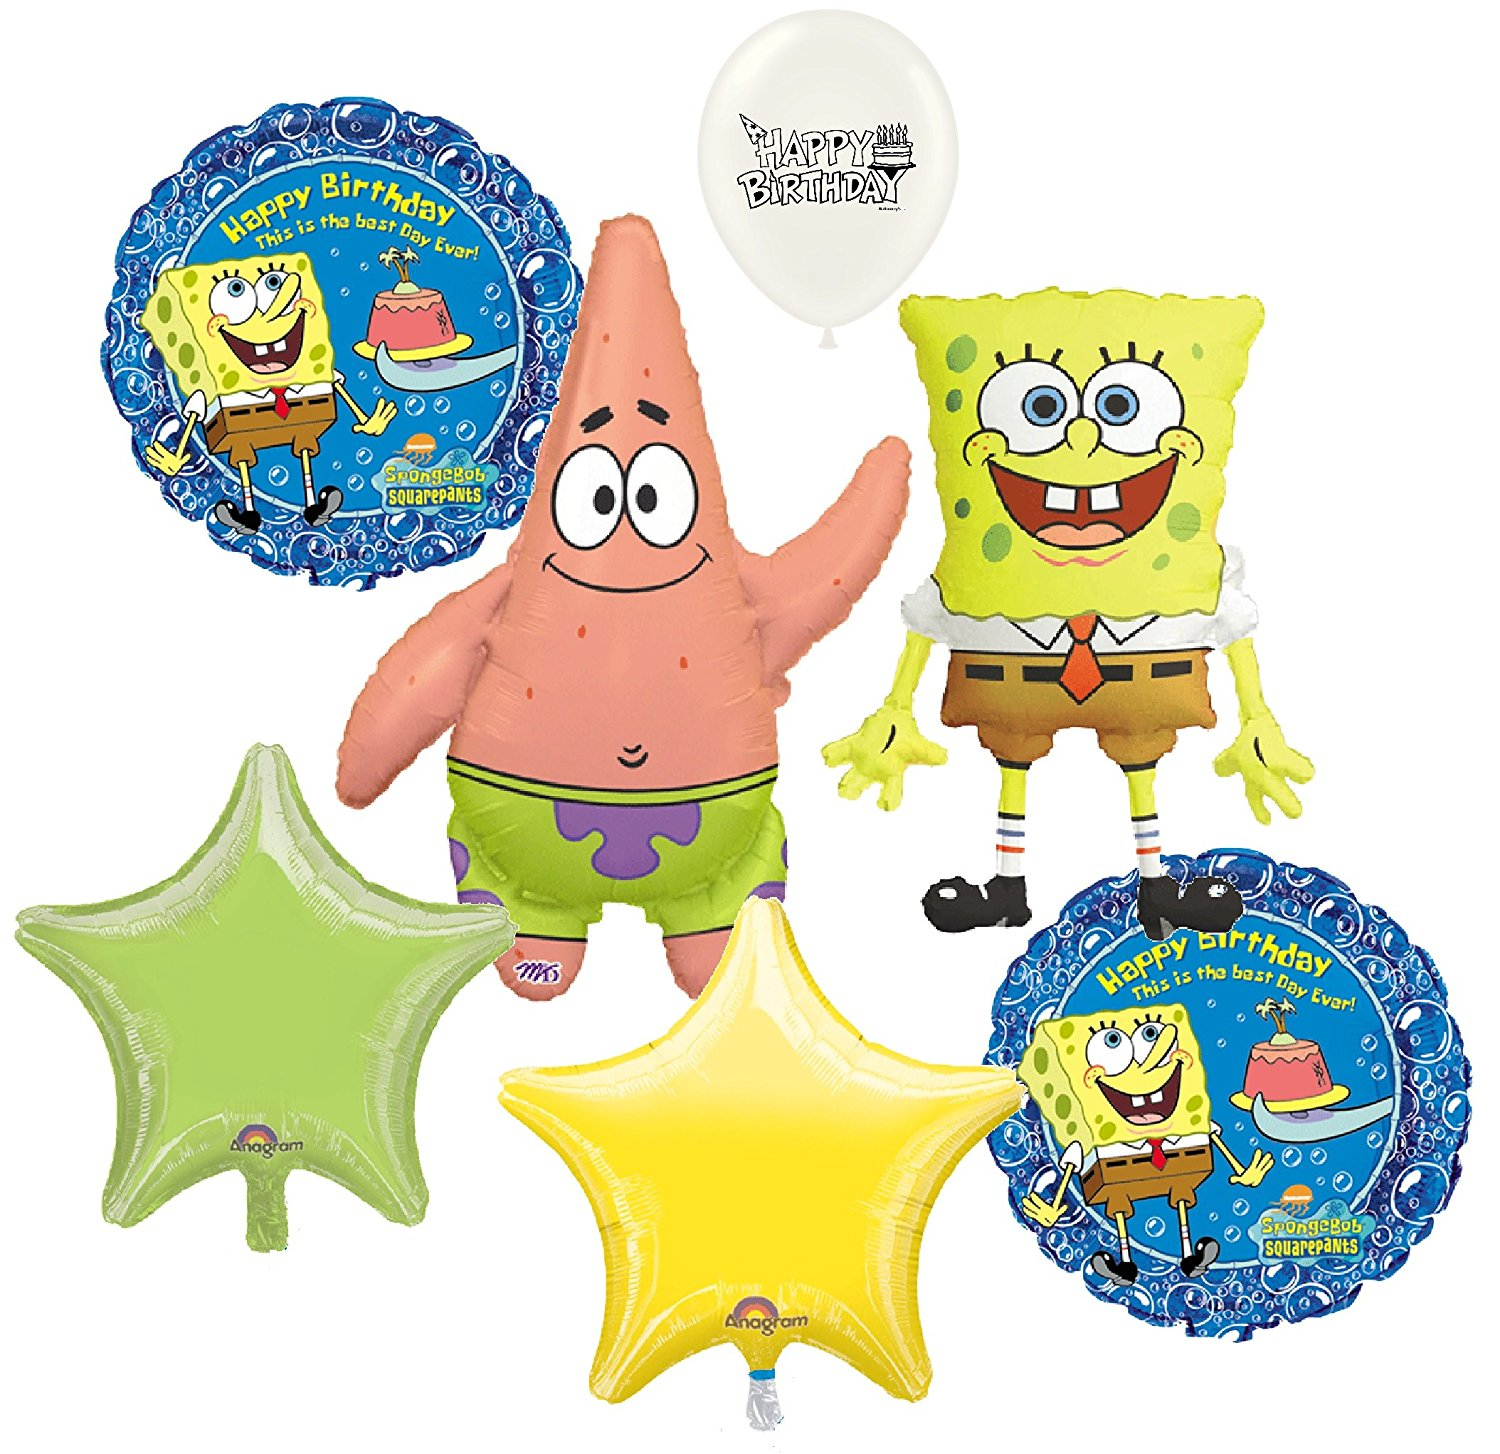 Spongebob Squarepants and Patrick Birthday Party Balloons Bouquet